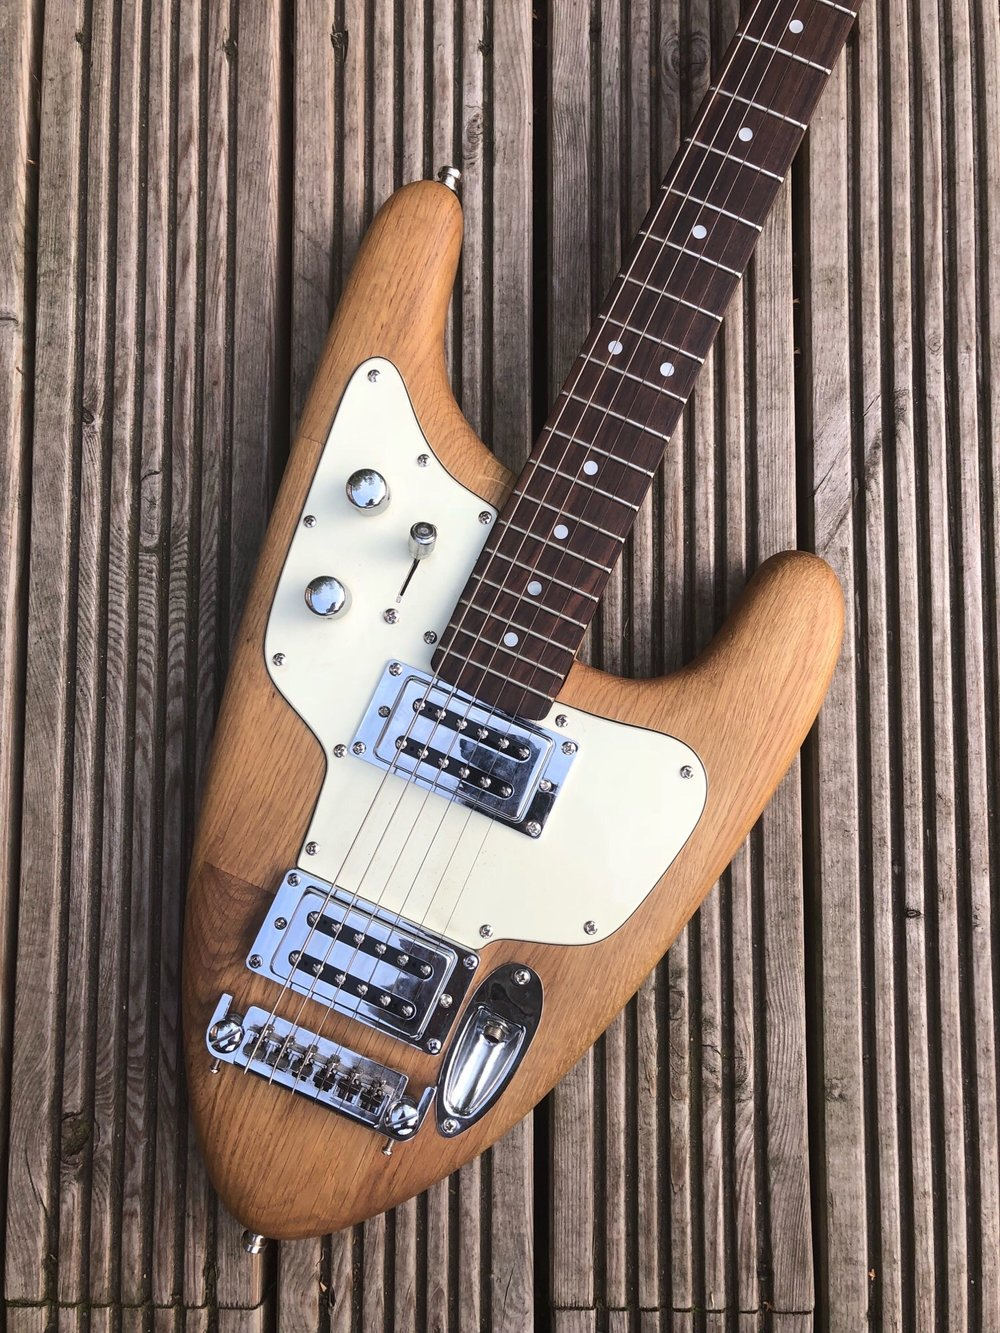 """The first Maybury Guitar - This is the first guitar that was made for my son, """"The Maybury Arrow"""".It has a solid body made from a reclaimed oak worktop, a 25.5"""" scale length, 59 Alnico V Humbuckers, a bolt on neck and a wrap around bridge.Even though it is full scale, it is considerably shorter than most modern electrics making it a very portable guitar.To this day it's still my son's go to guitar, with a uniquely bright but full tone from the oak and Alnico Vs"""